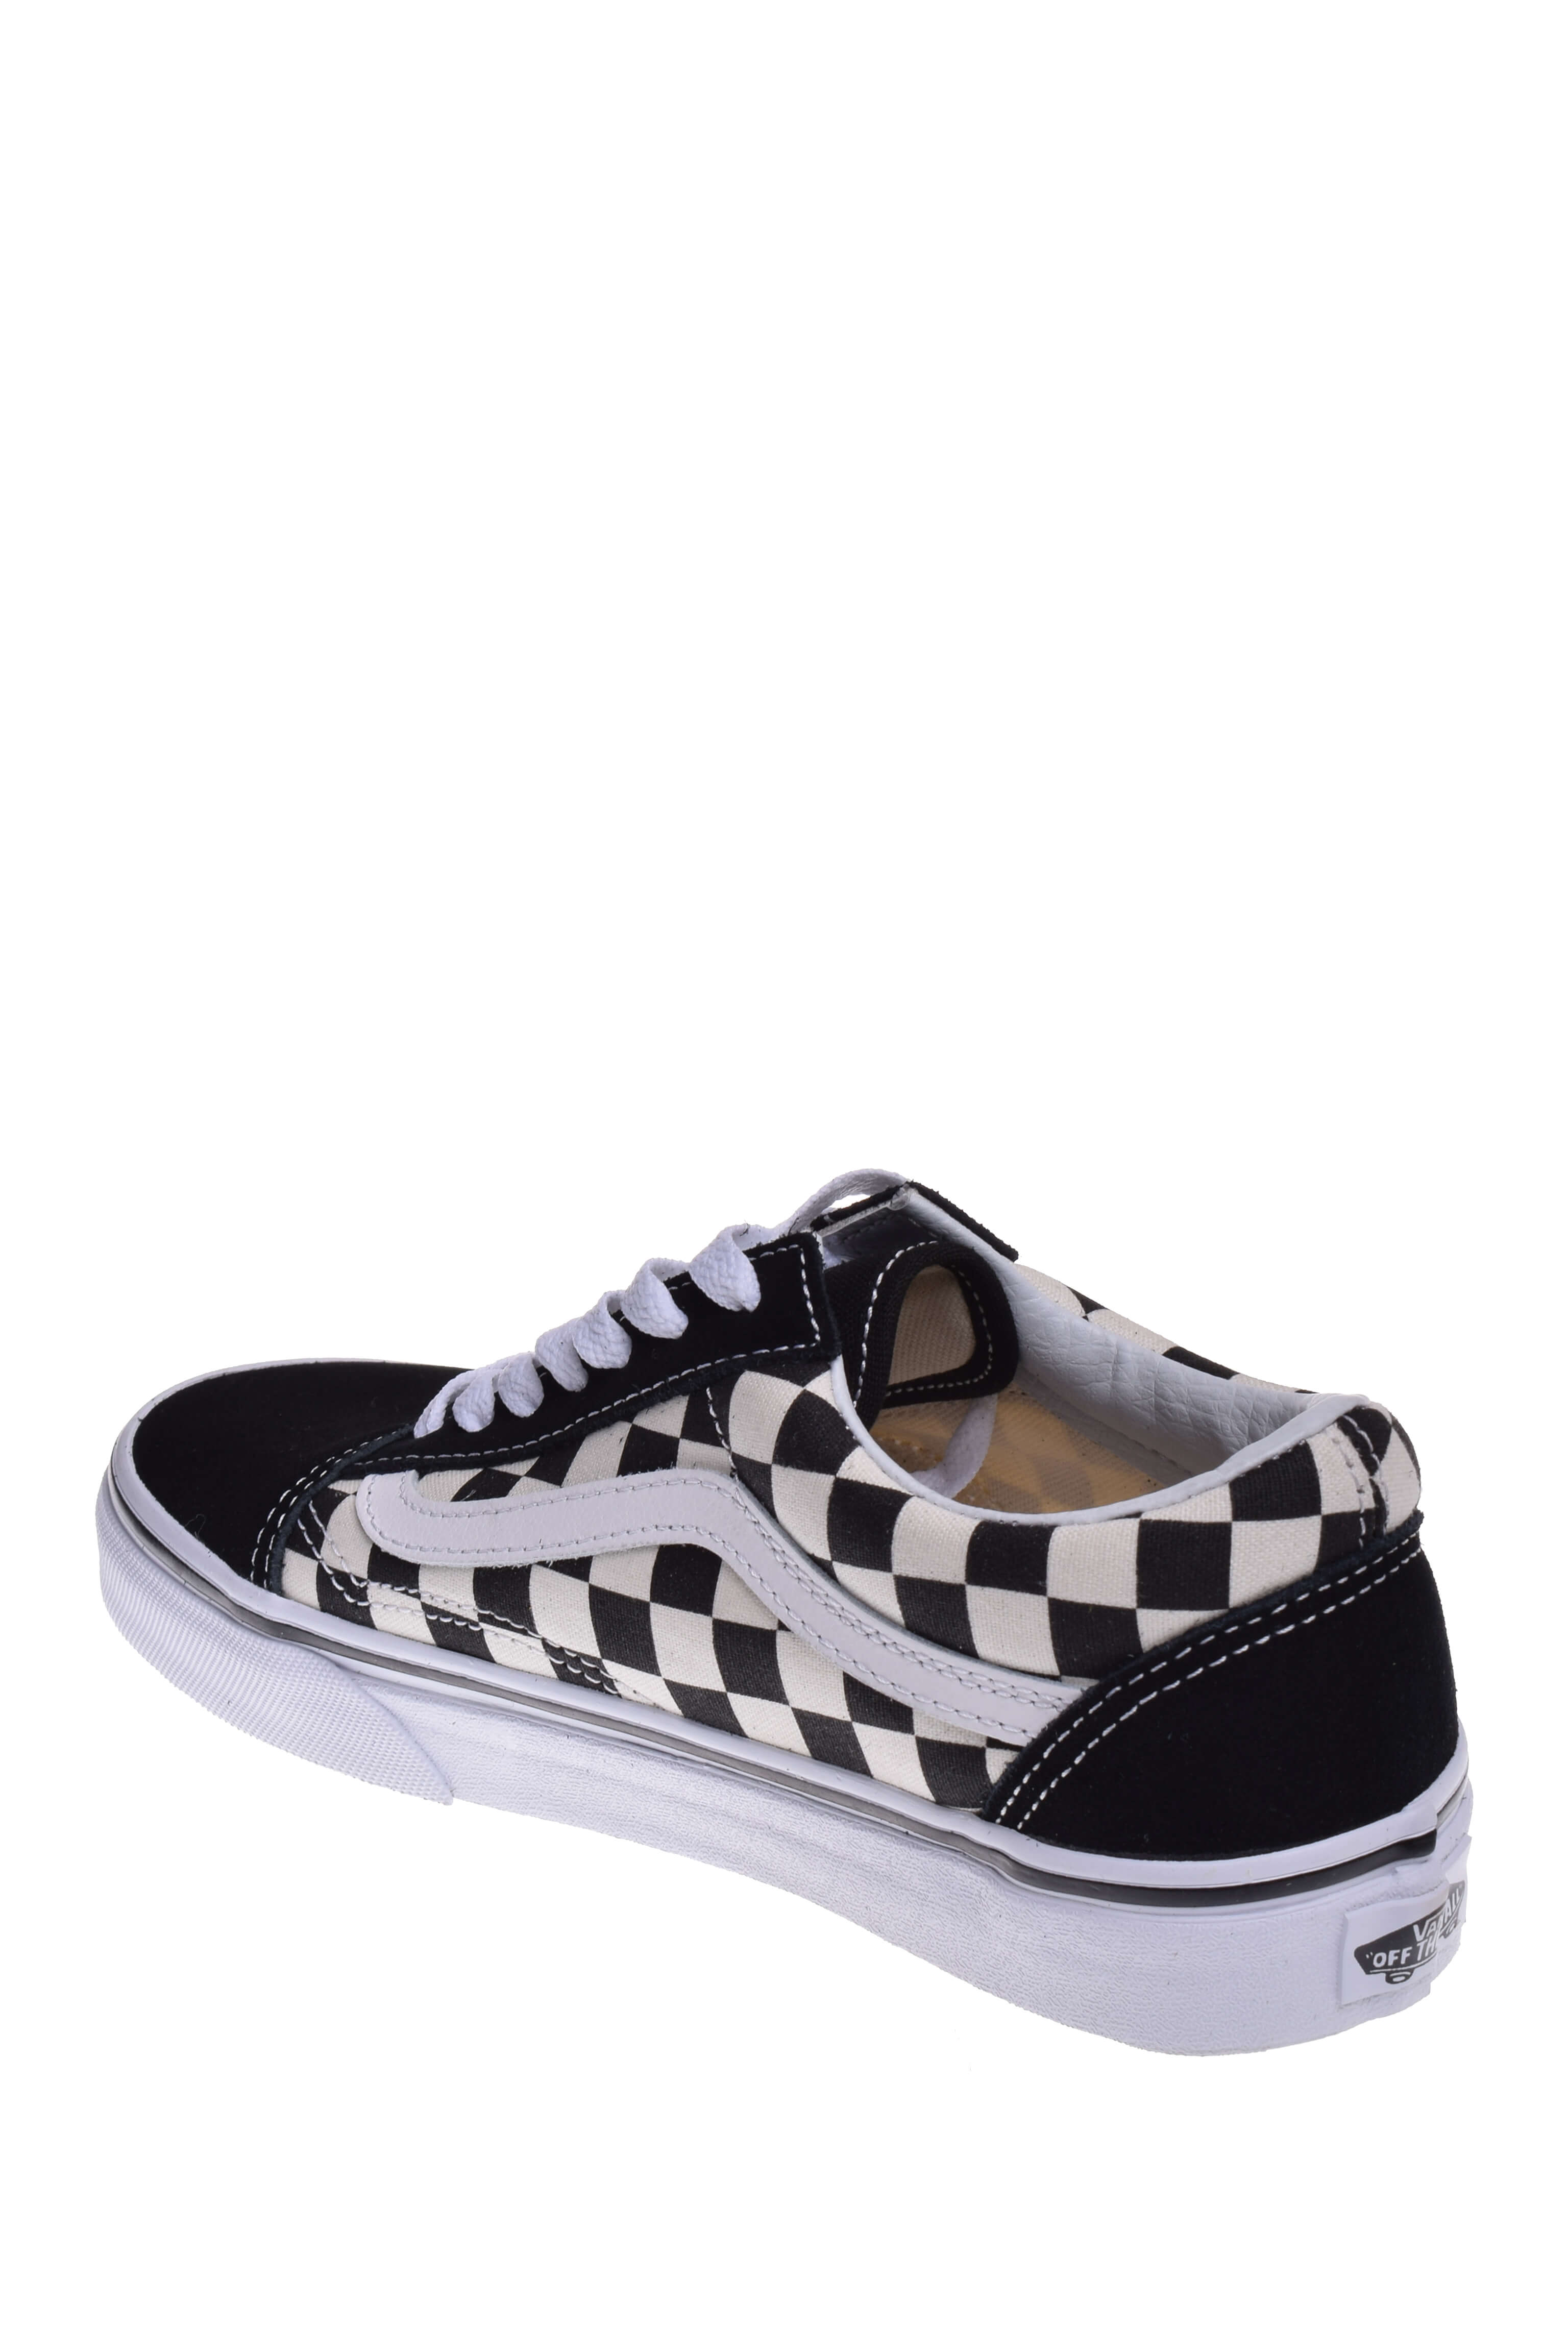 2c7f39472a1c Vans VN0A38G1P0S Unisex Old Skool Primary Canvas and Suede Sneakers -  (Checkerboard) Black   Off White